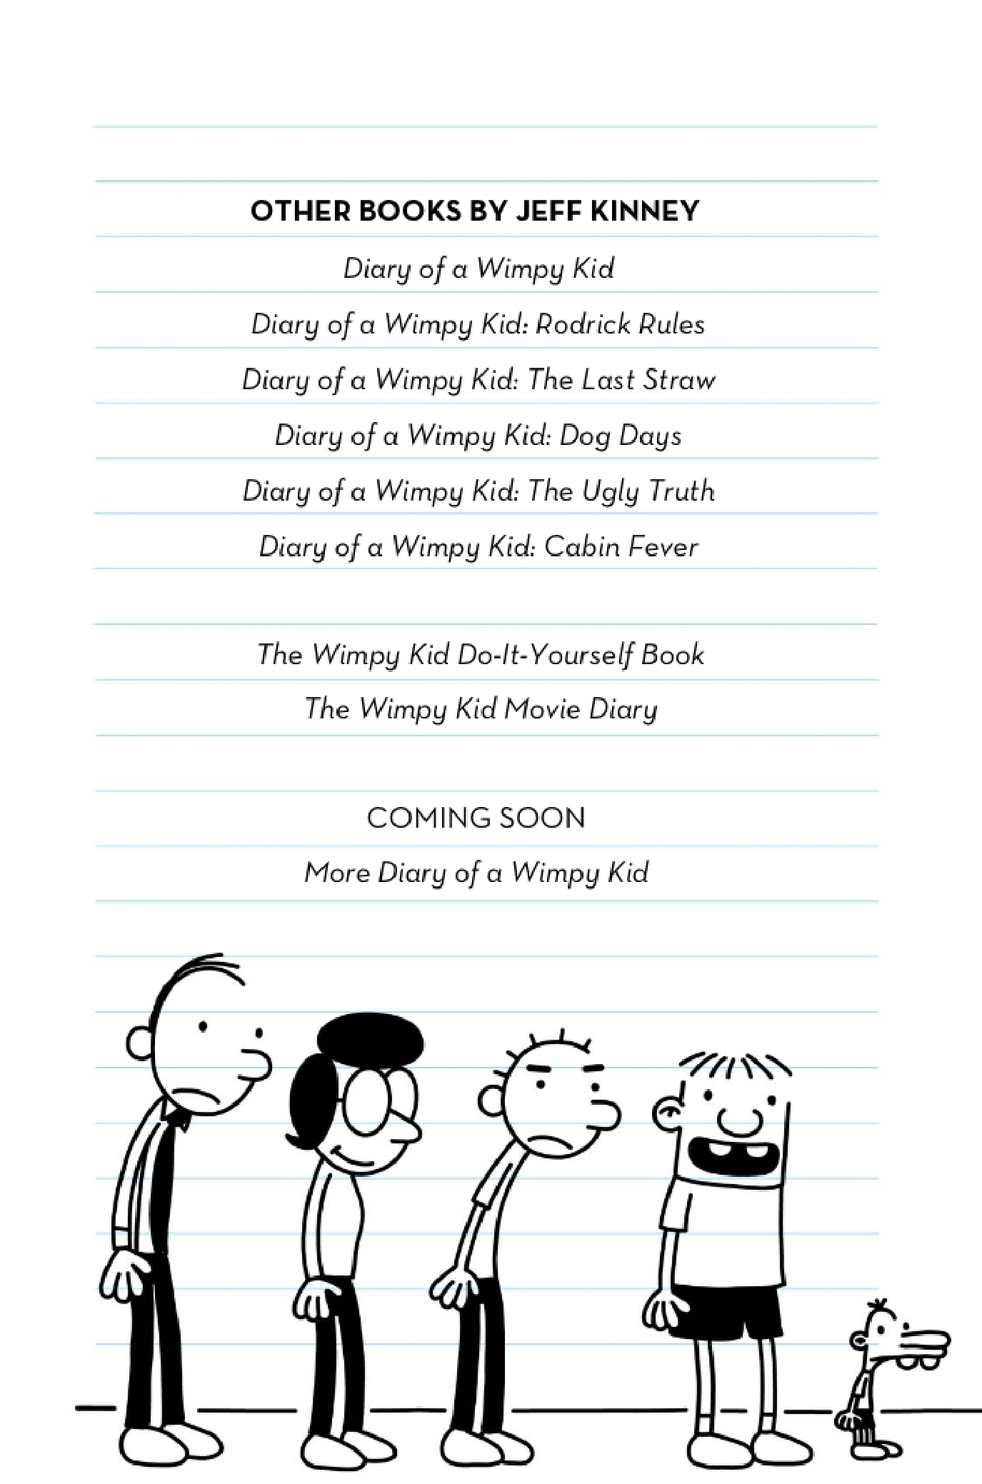 Diary of a wimpy kid 7 the third wheel calameo downloader page 4 solutioingenieria Choice Image